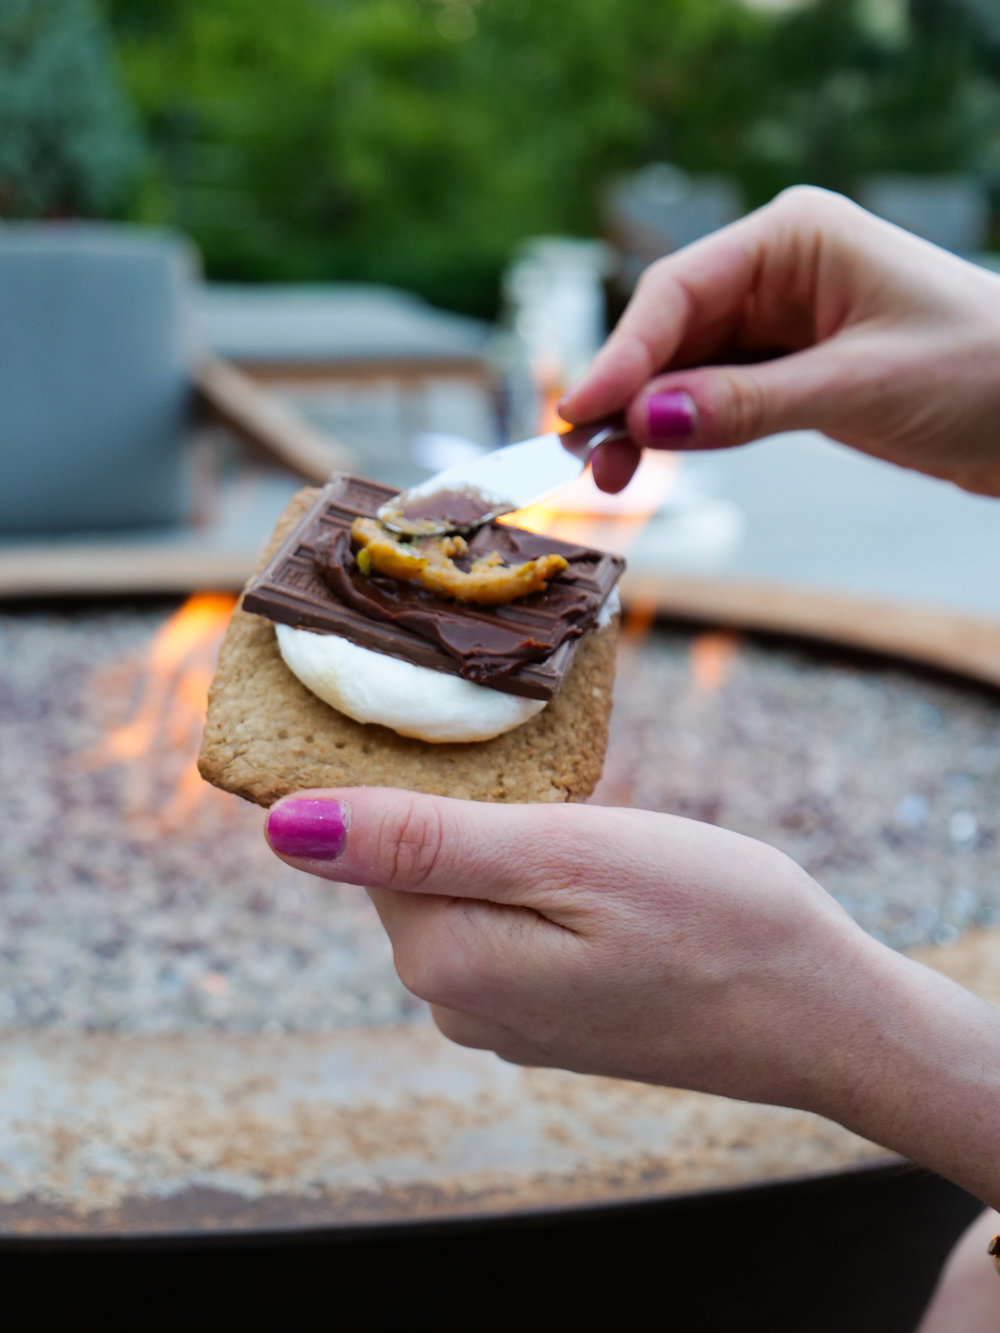 Putting the peanut and pistacio spread on the s'more